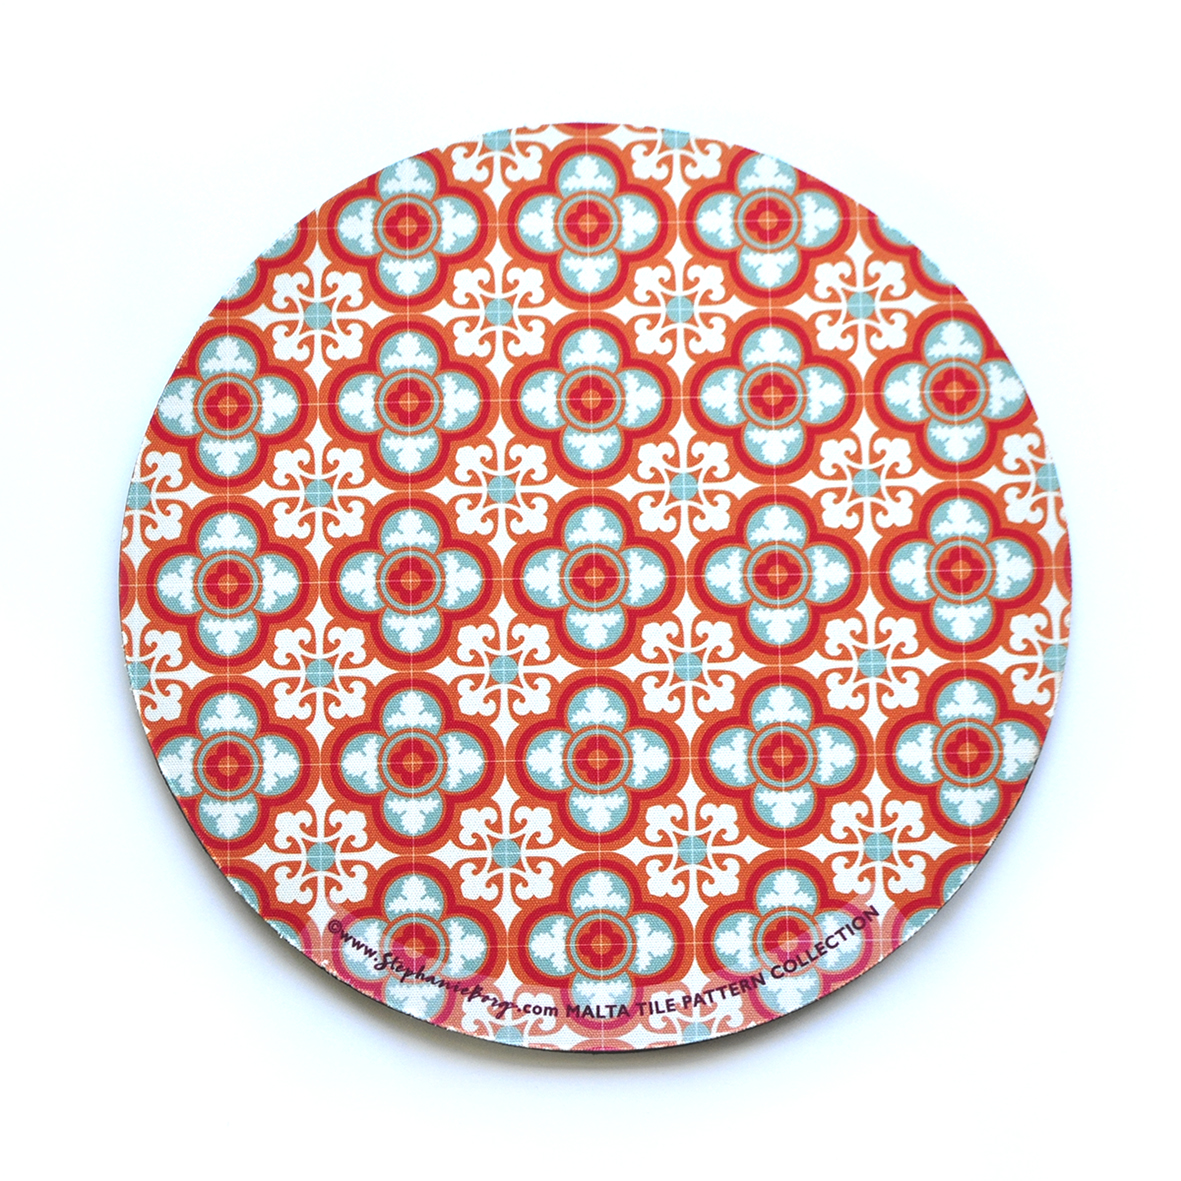 Mousepad with Maltese Tile Patterns, pattern no.5